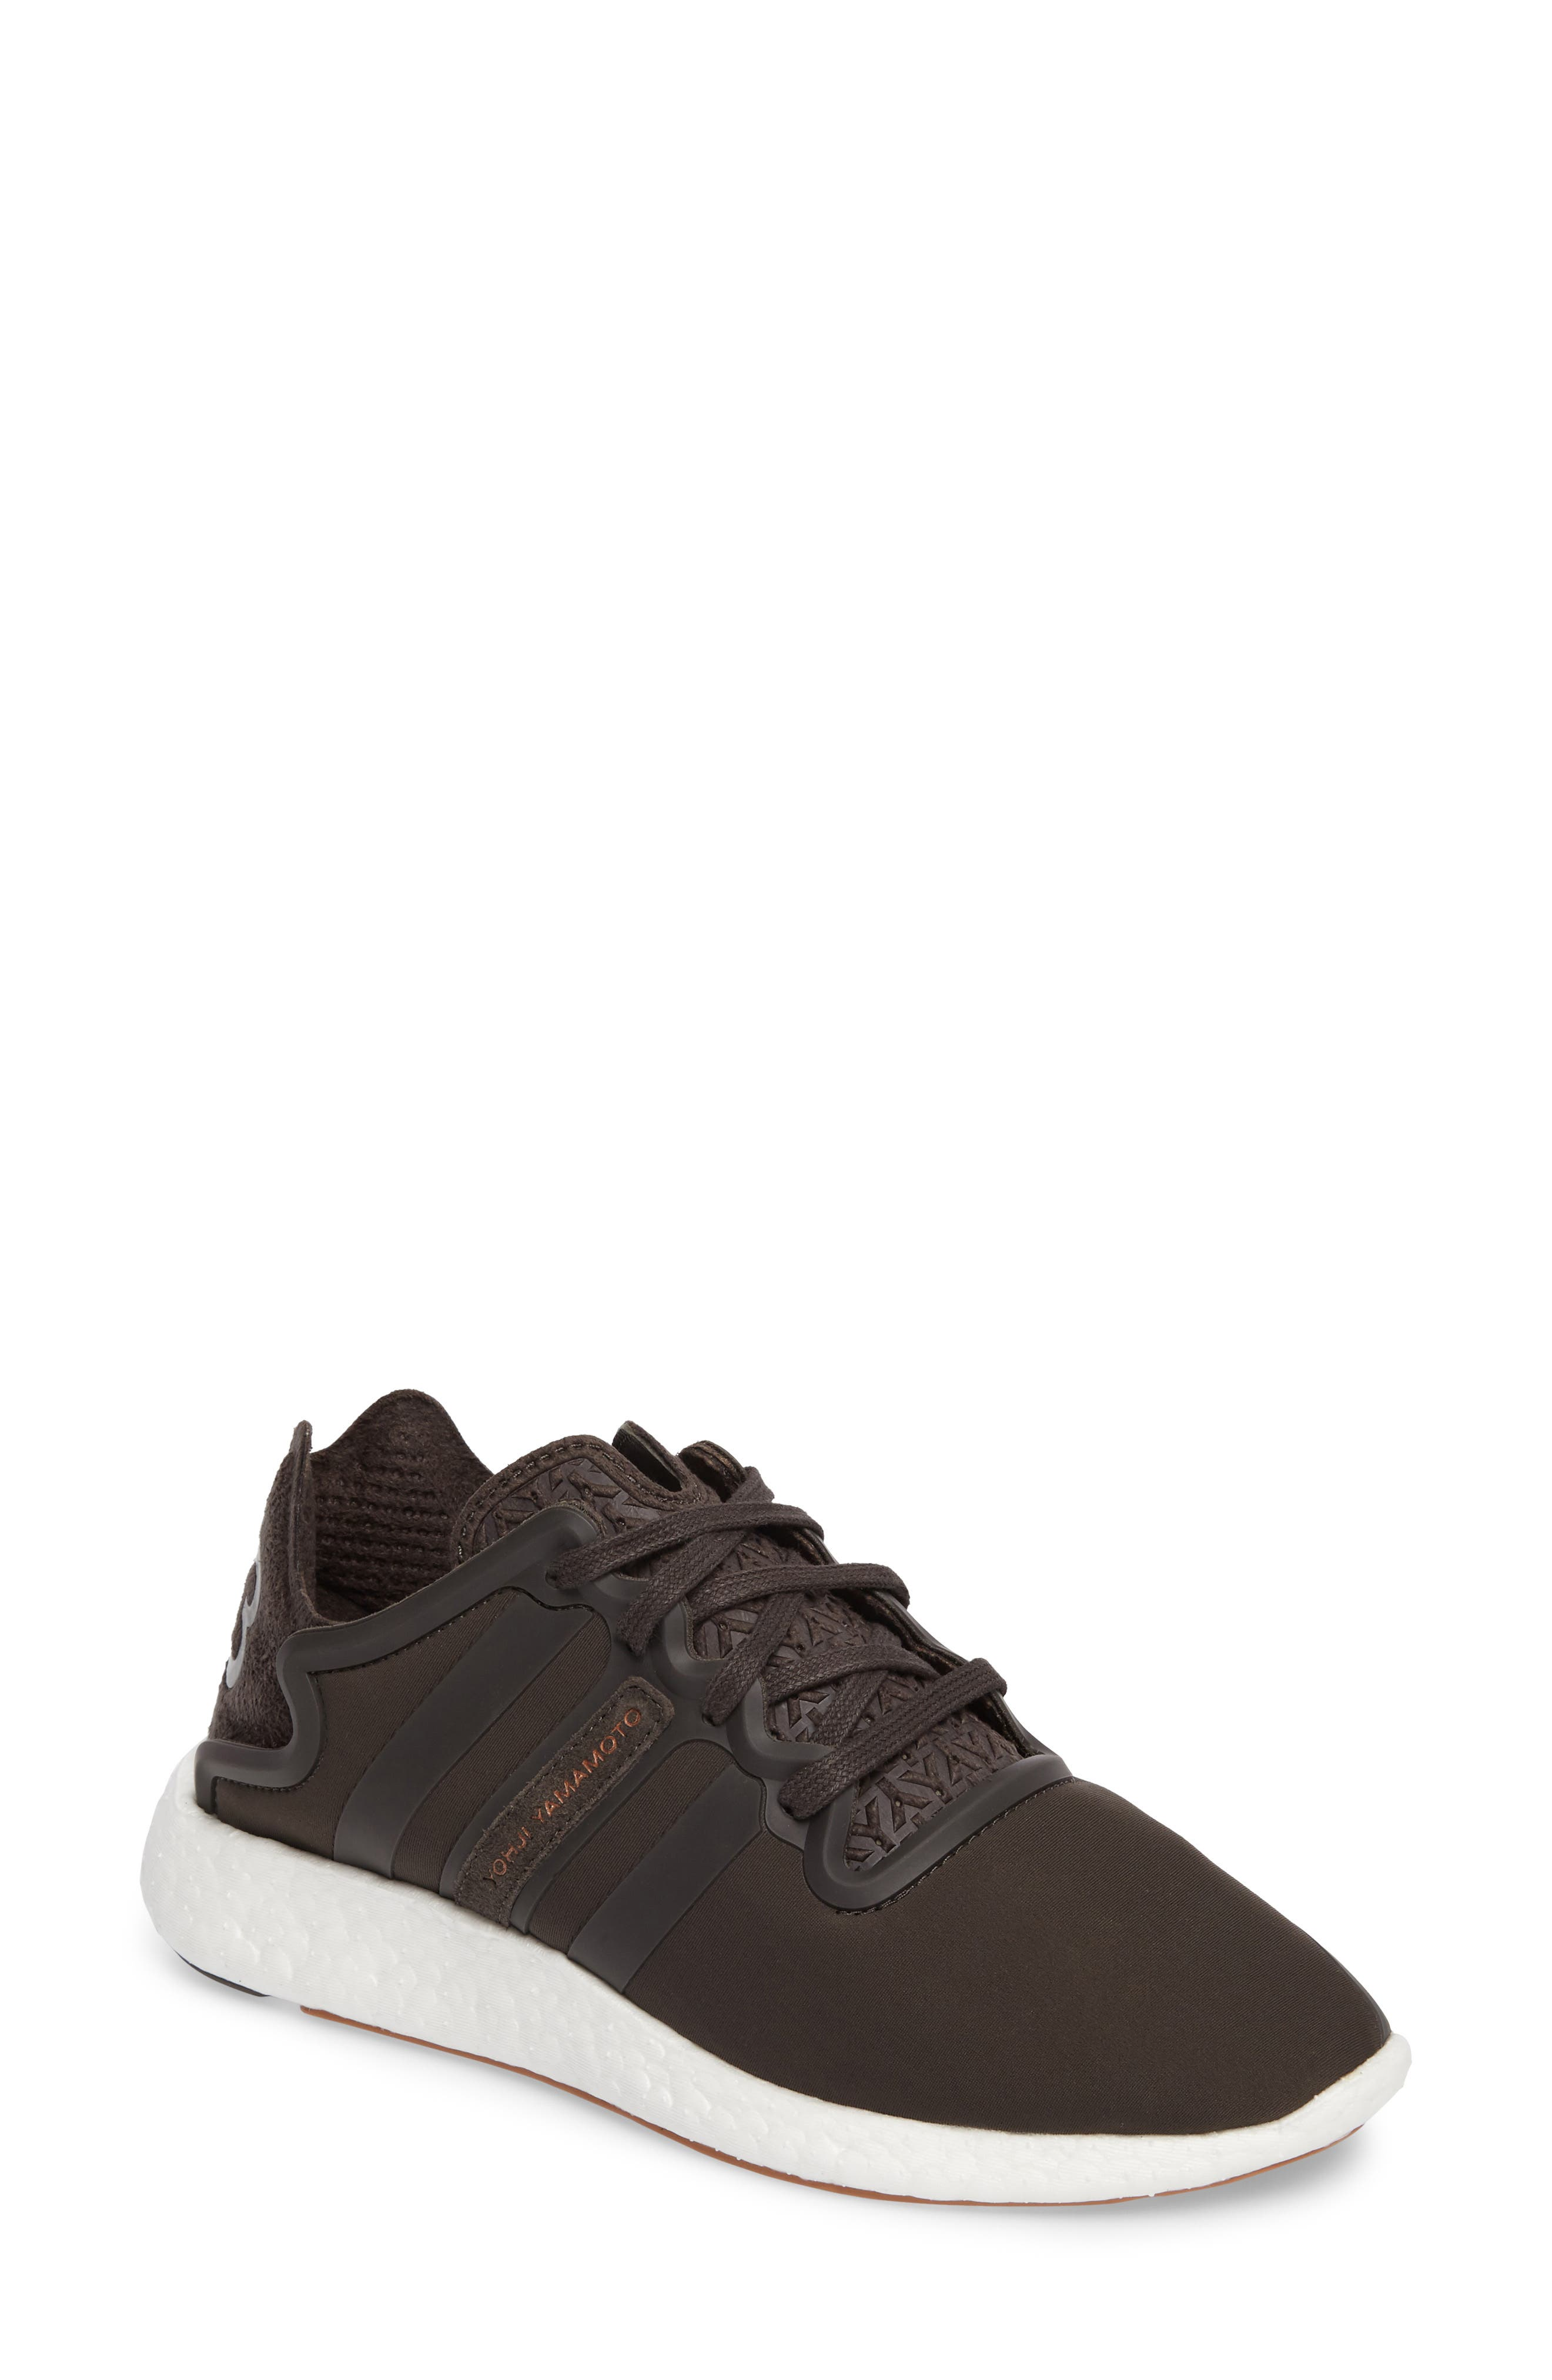 Y-3 Yohji Run Sneaker (Women)